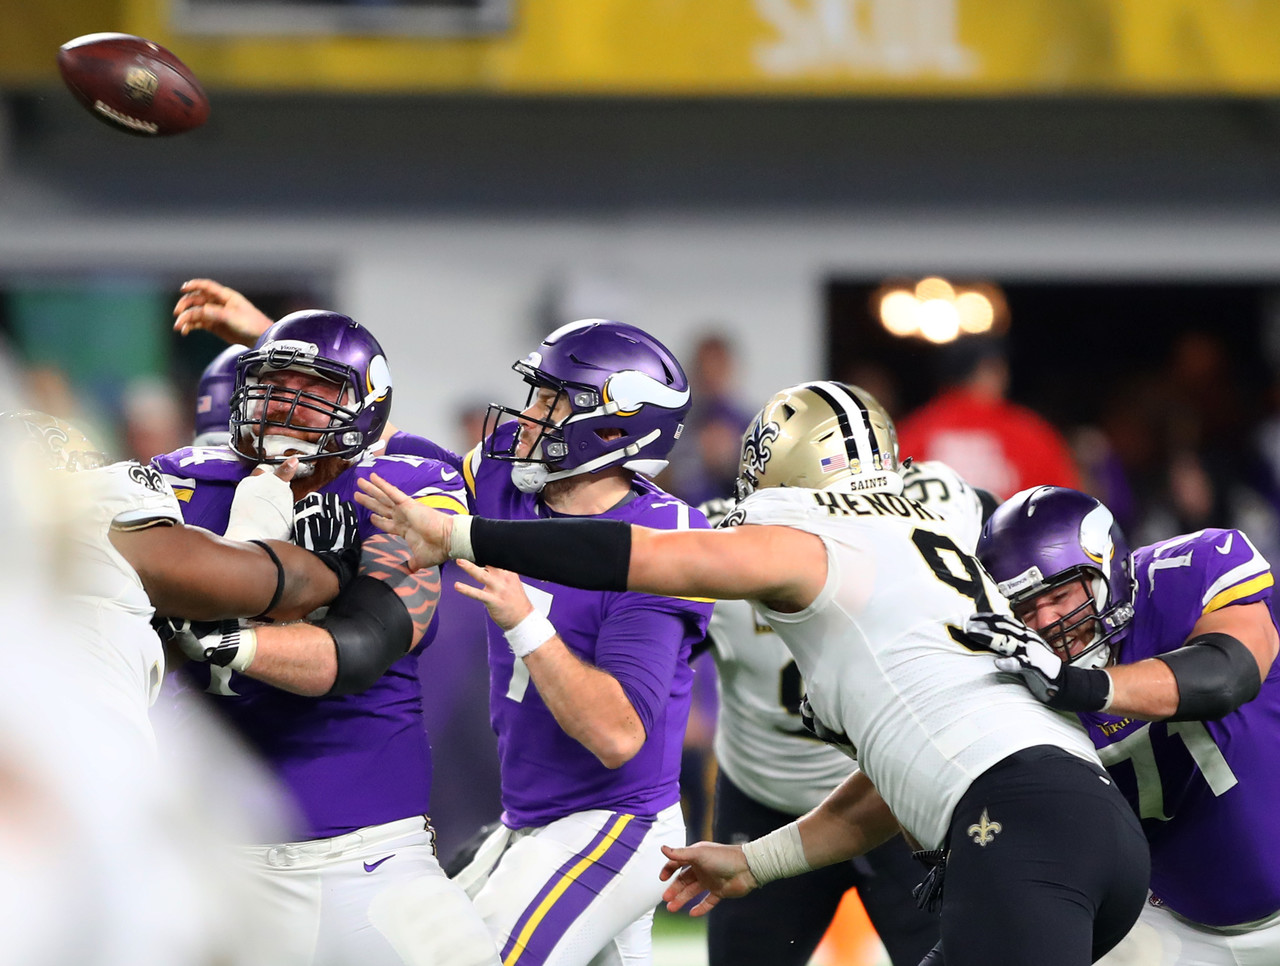 Minnesota Vikings quarterback Case Keenum throws the game winning touchdown.